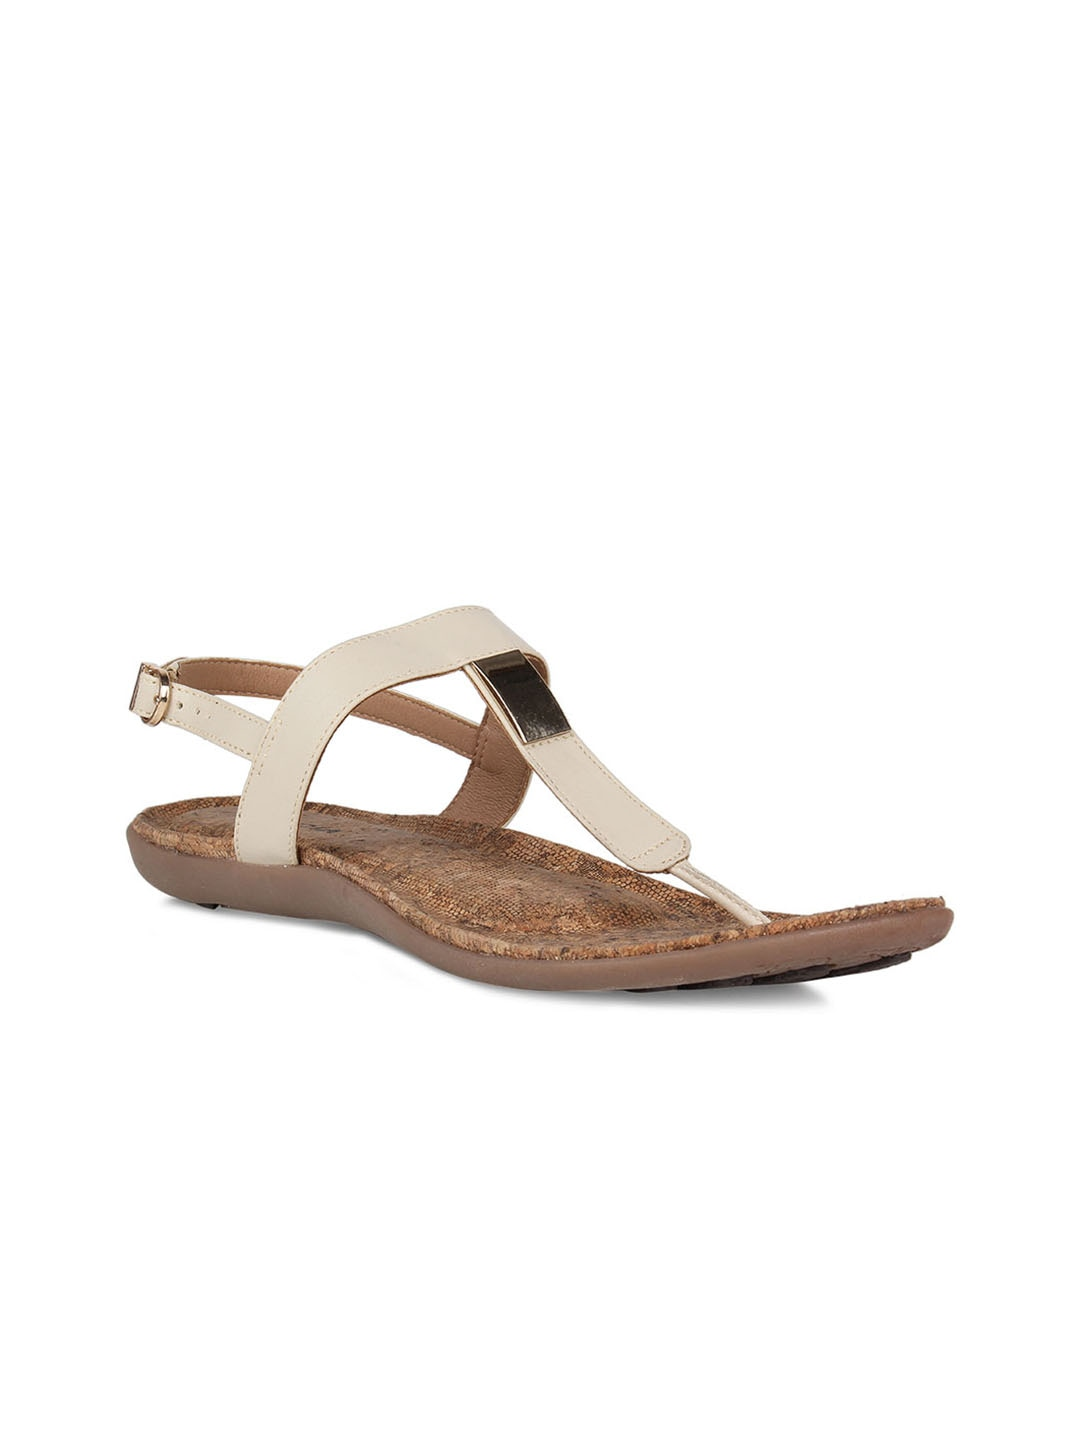 Beige Solid T-Strap Flats